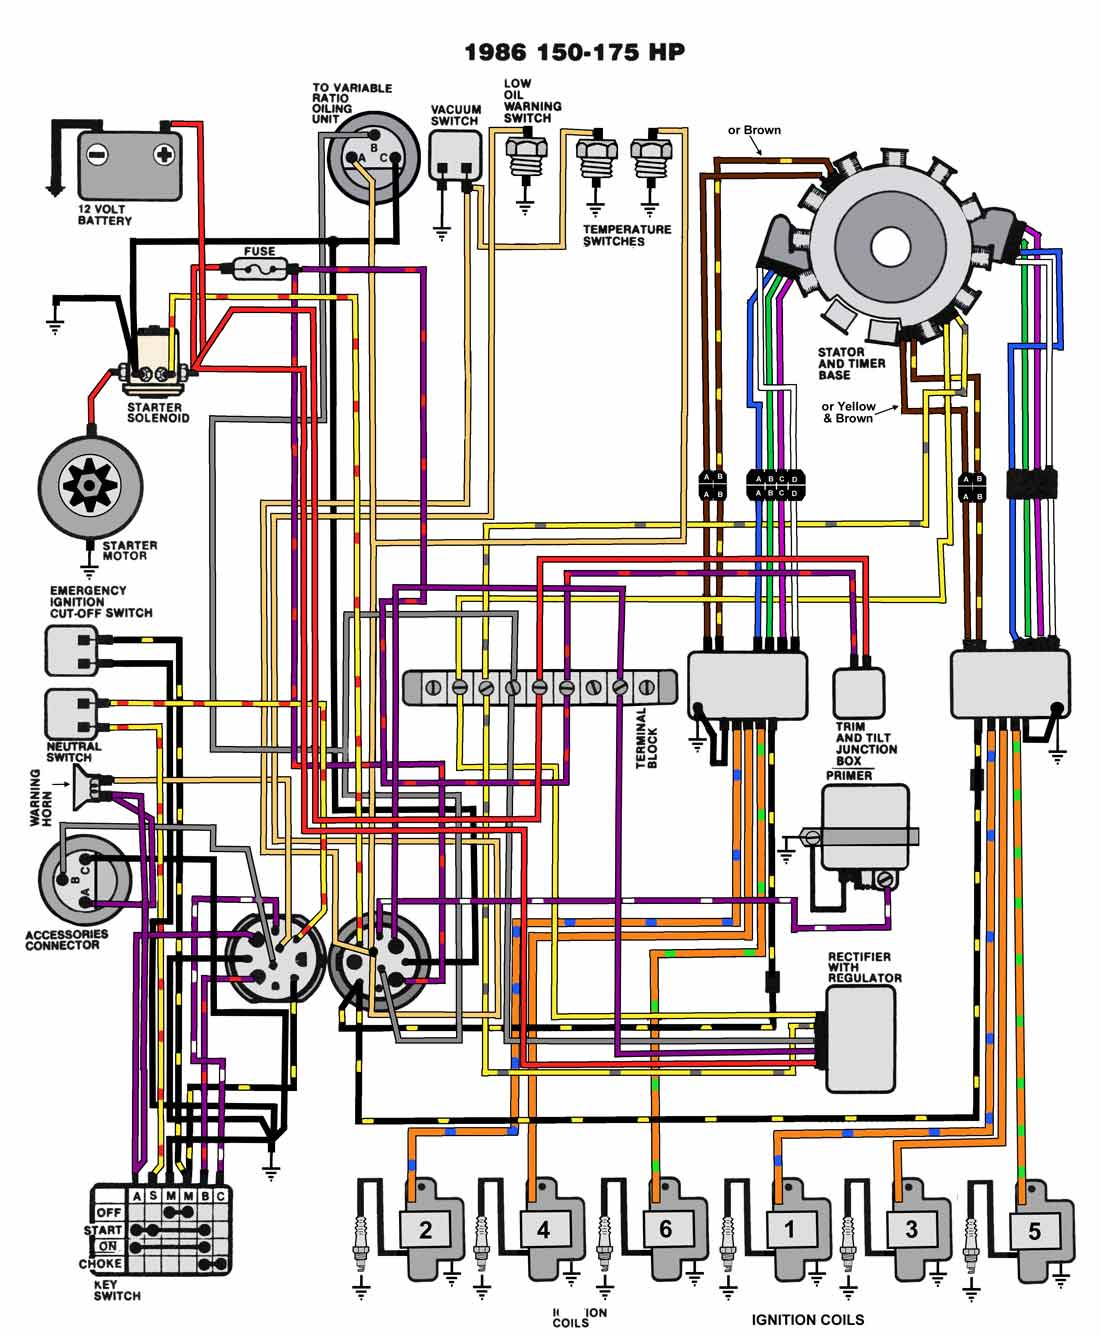 1986_150_175 omc wiring diagram 1967 johnson 40 wiring diagram \u2022 wiring johnson ignition switch wiring diagram at reclaimingppi.co